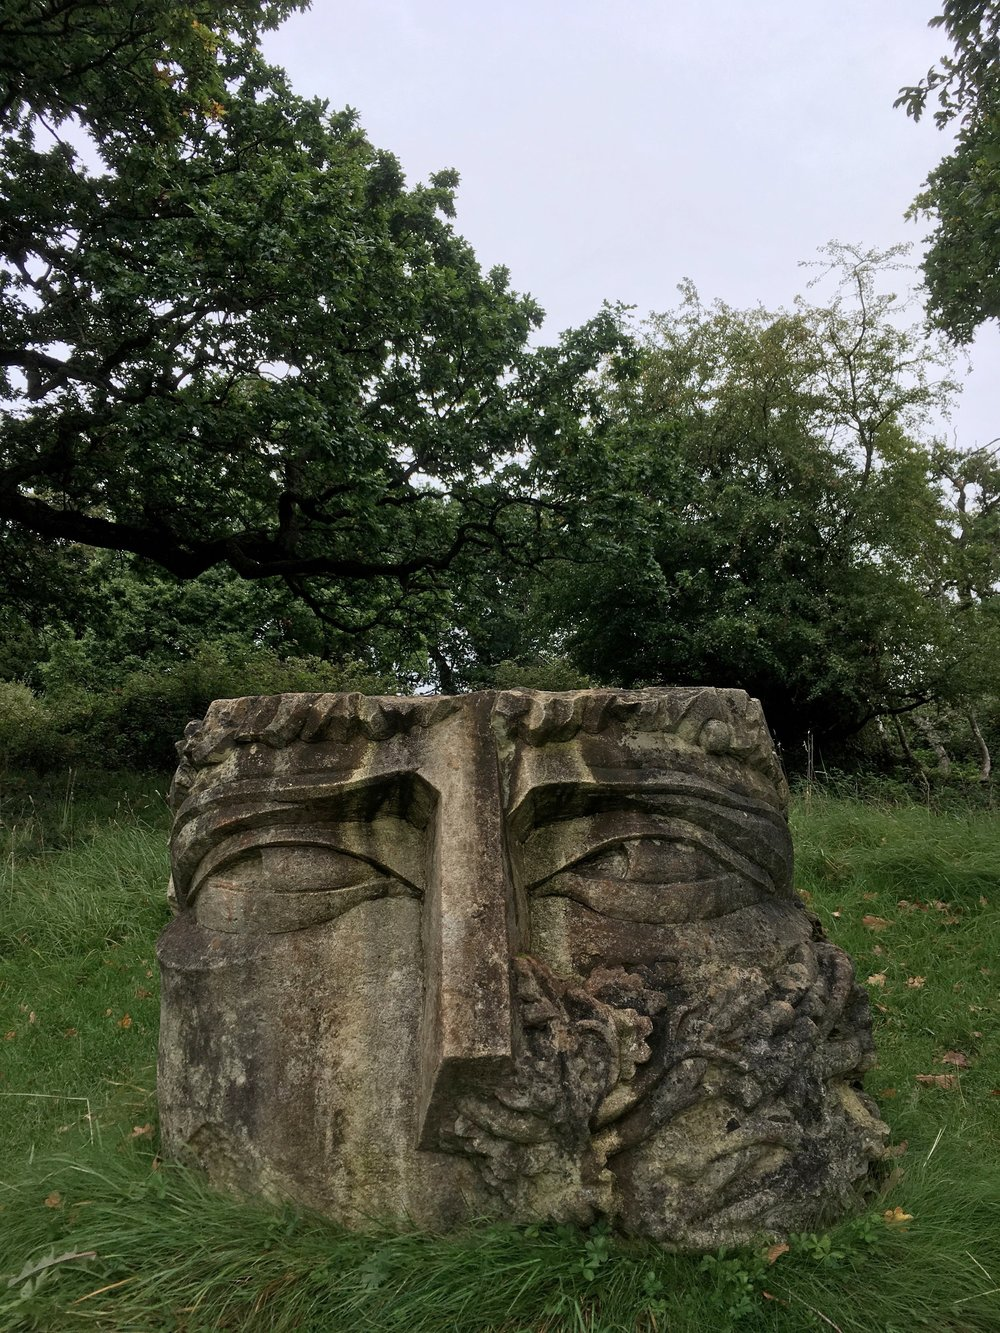 The famous Green Man sculpture that looks over Ashton Court and out over Bristol.